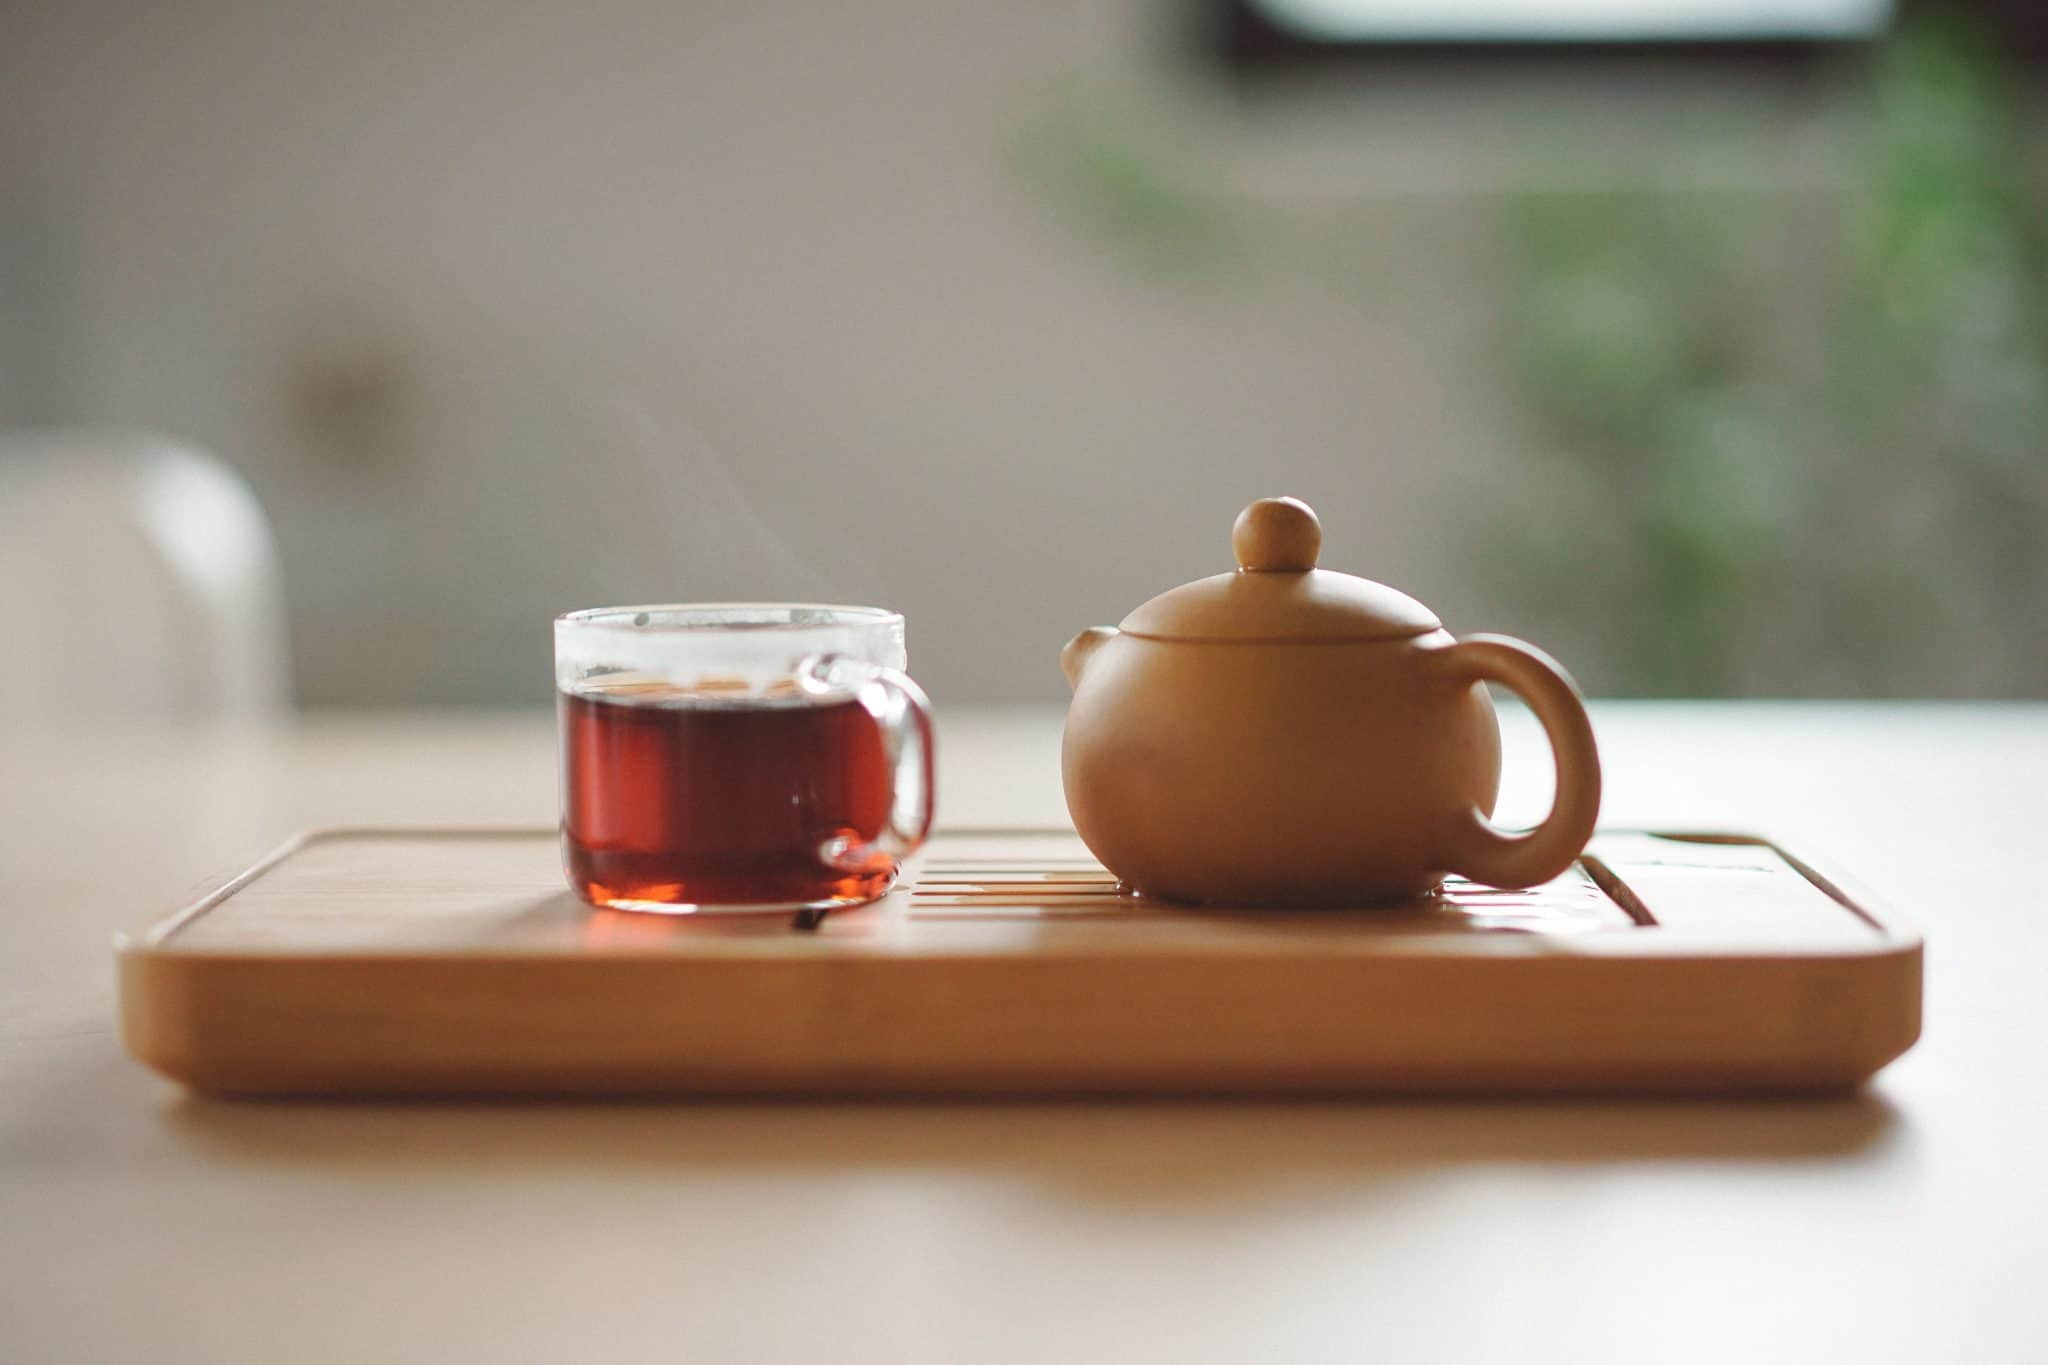 List of the 3 largest tea companies in Germany